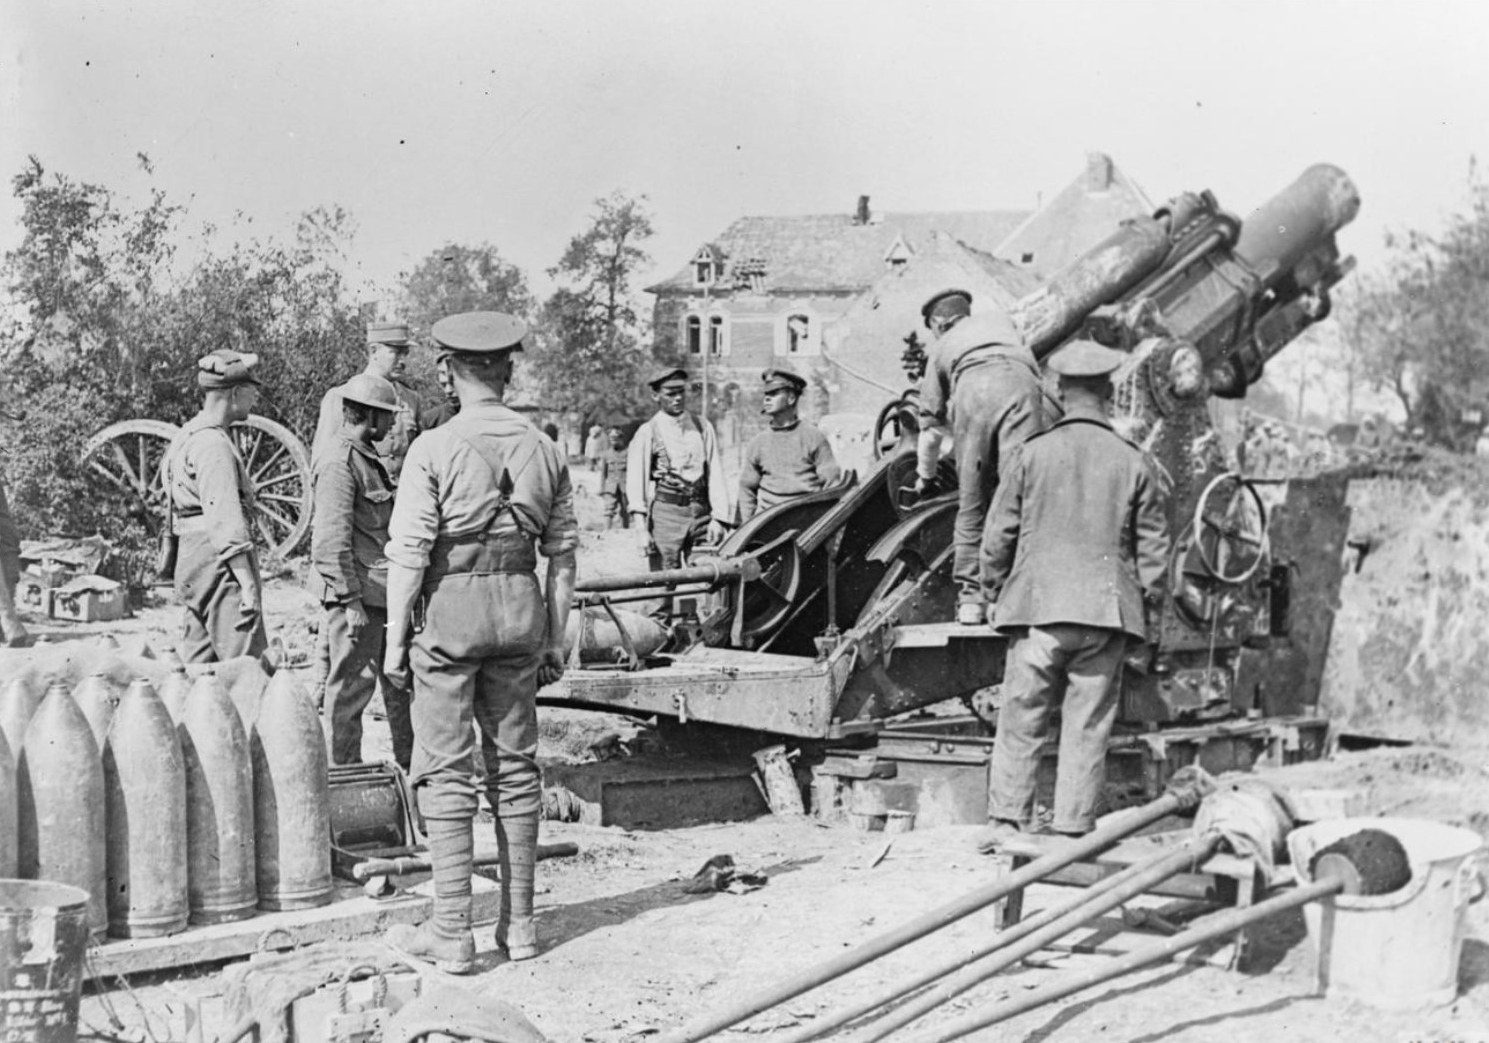 A 9.2 inch howitzer of the Royal Garrison Artillery in firing position near Maricourt during the Battle of the Somme, September 1916 (French Official Photographer, © IWM (Q 58449)).